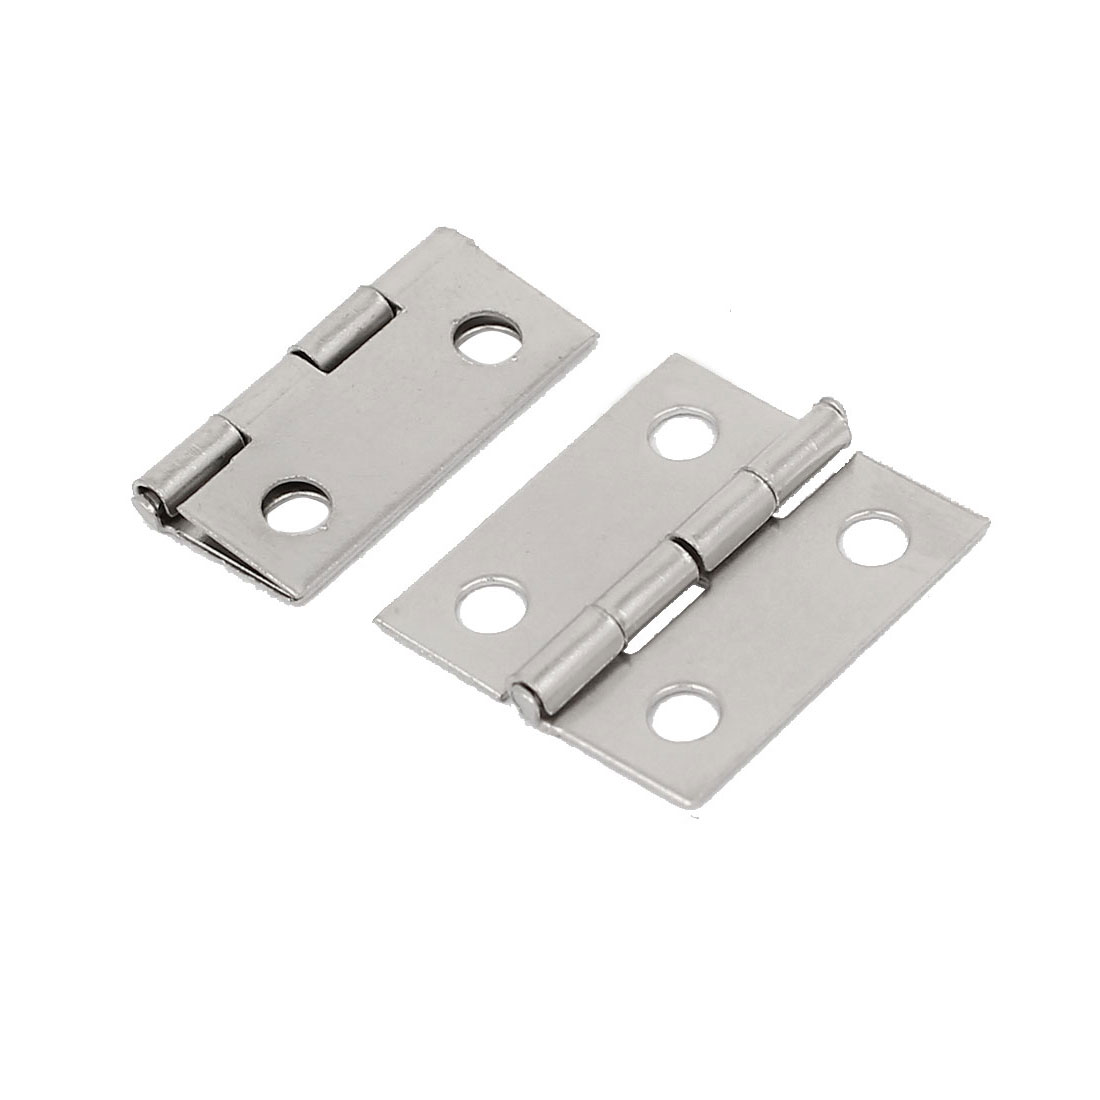 Jewelry Box Case Door Foldable Butt Hinges Silver Tone 18mm Length 2PCS